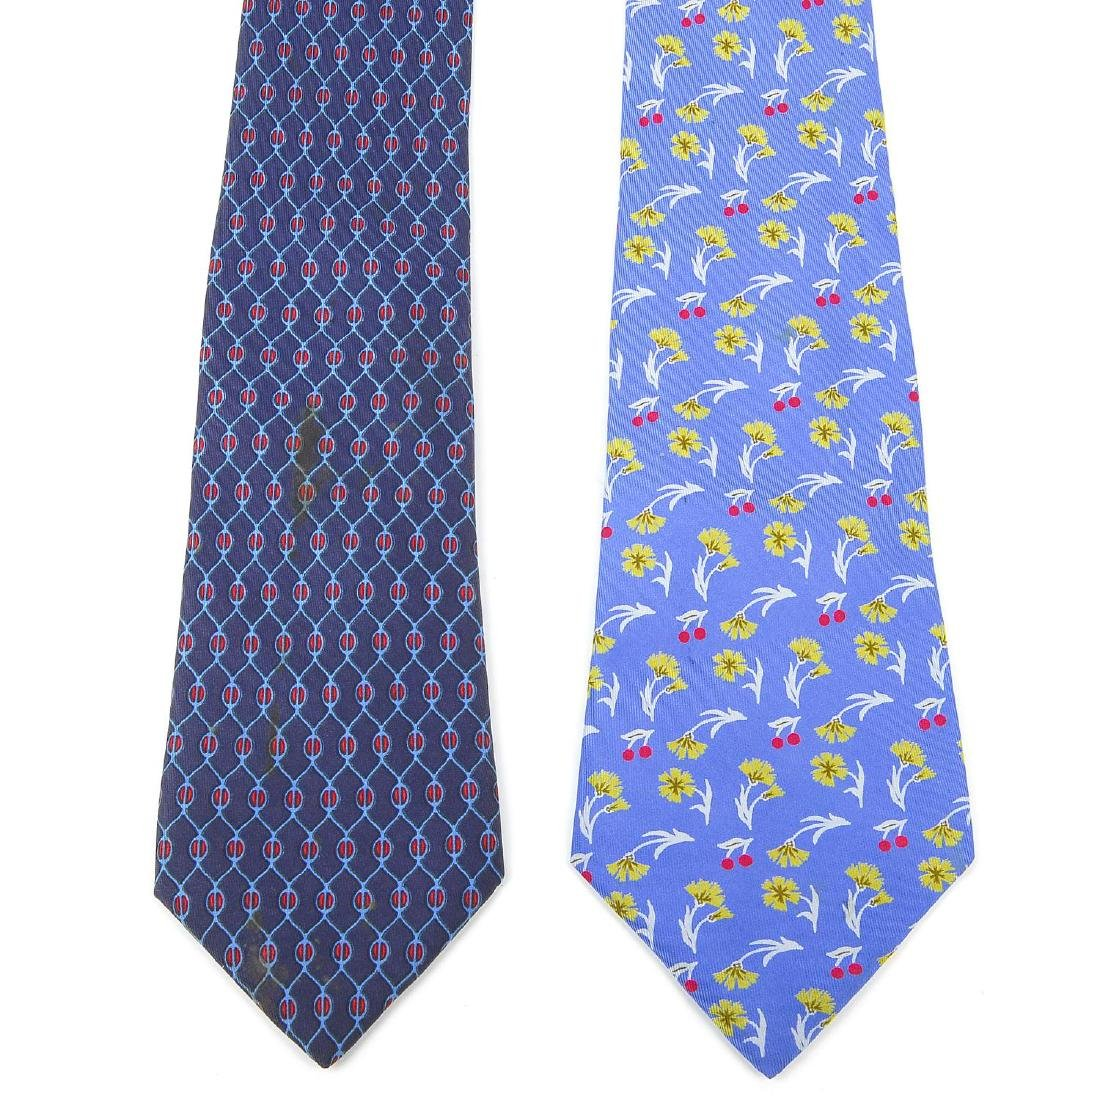 HERMÈS - two silk ties. Featuring a floral pattern of